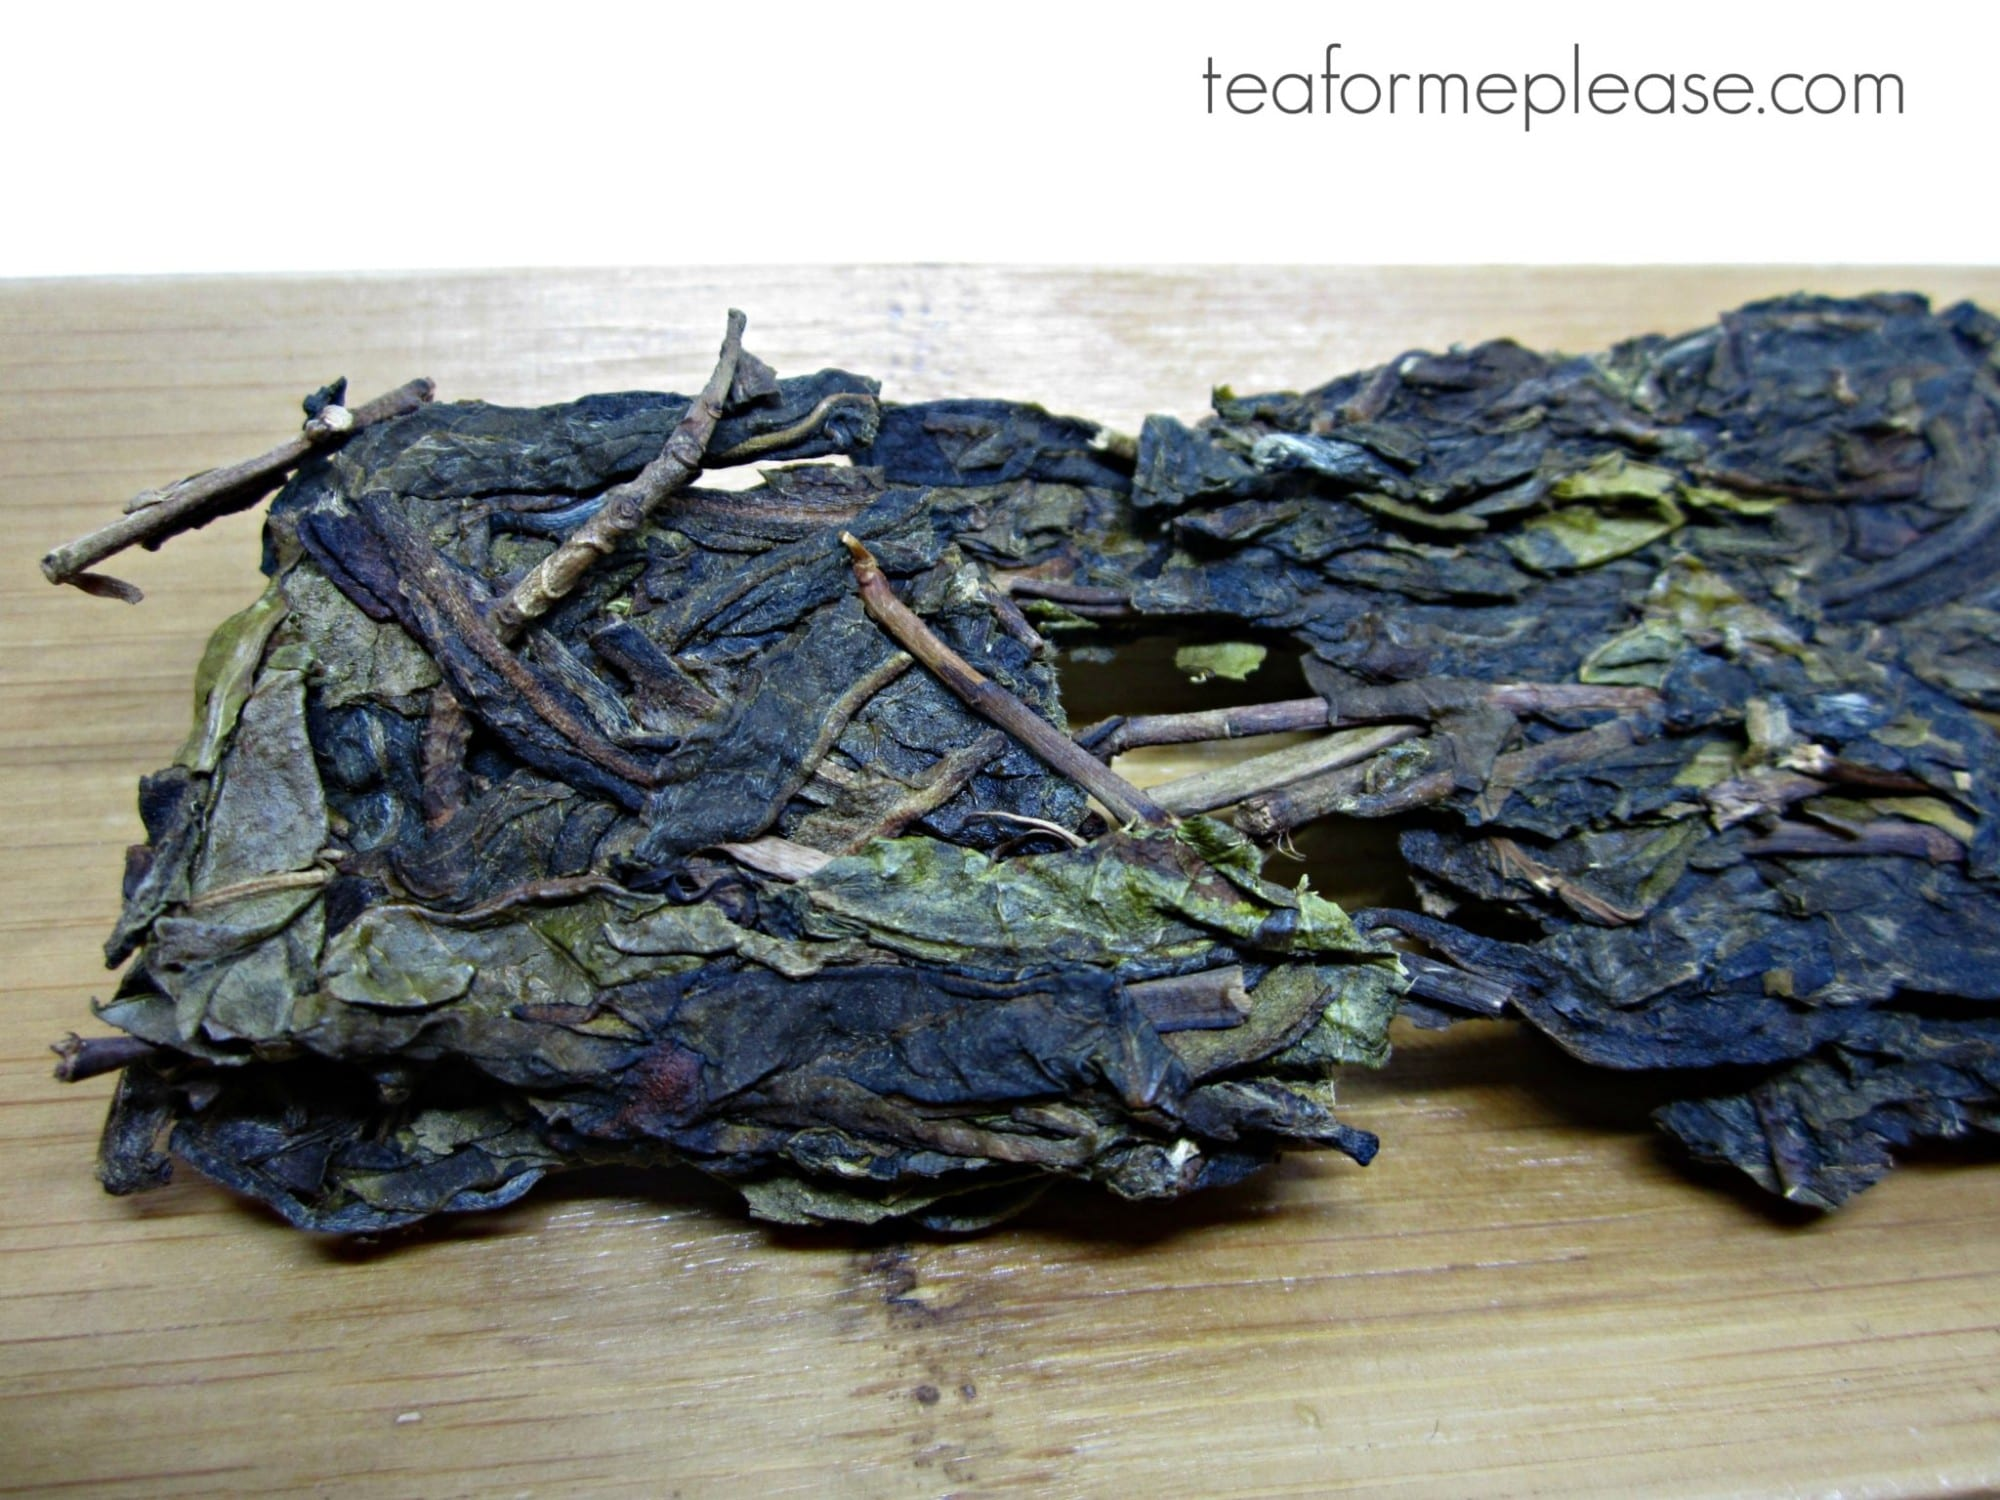 Bitterleaf Teas Alter Ego 2017 Spring Mansa Ancient Tree Huang Pian Raw Puer